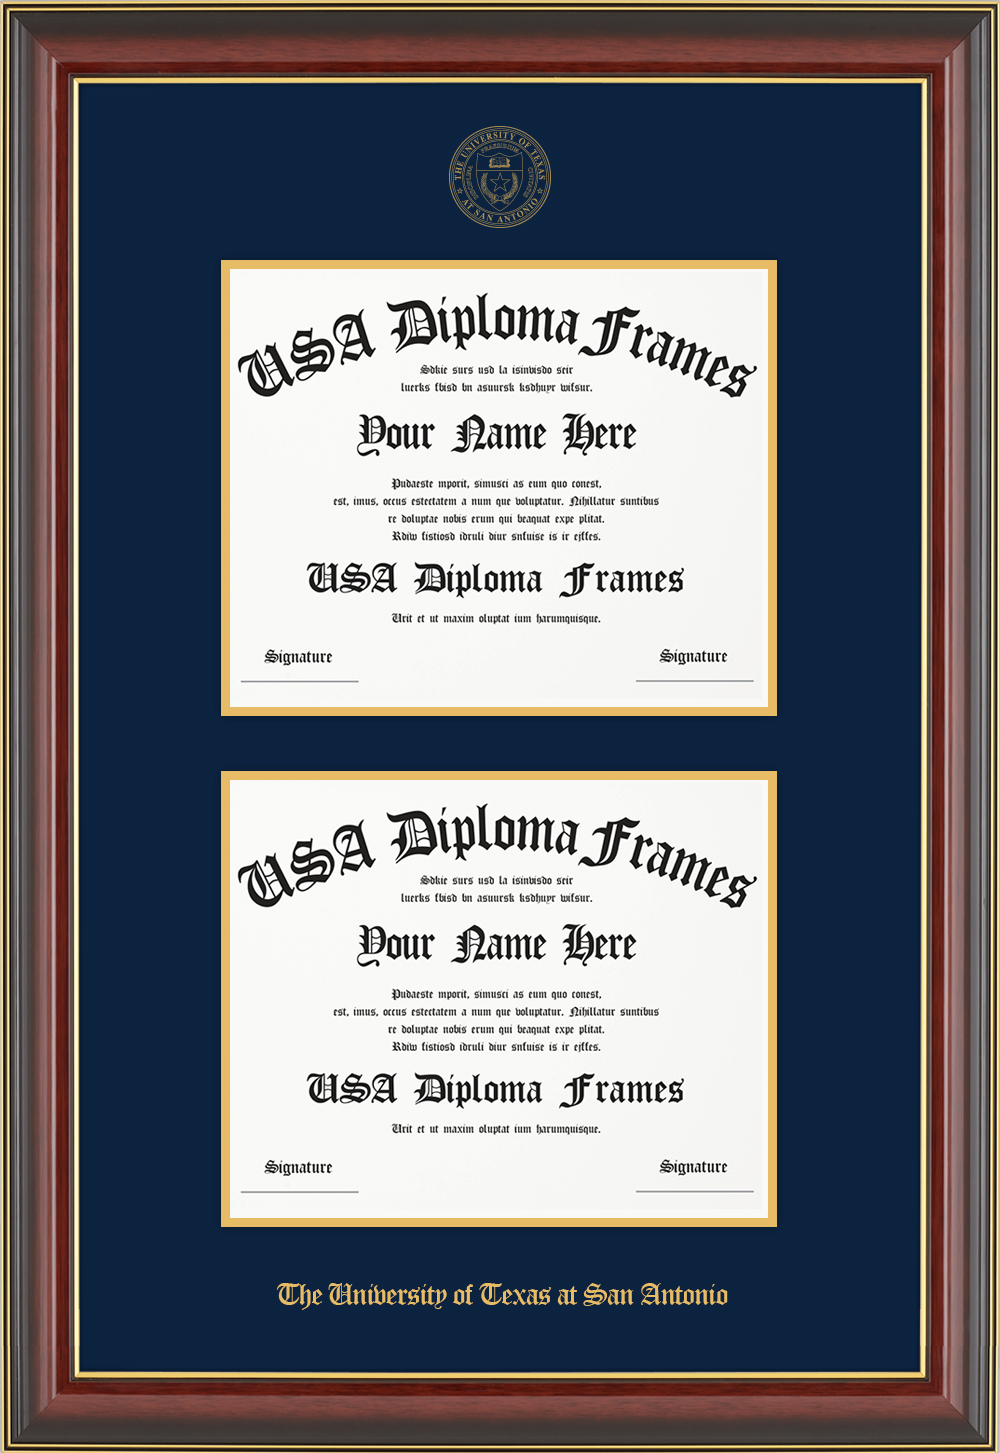 Double - Horizontal Documents-Cherry Mahogany Gold Trim Glossy Moulding -Navy Matt - Gold Accent Matt - Gold Seal - Gold Embossing